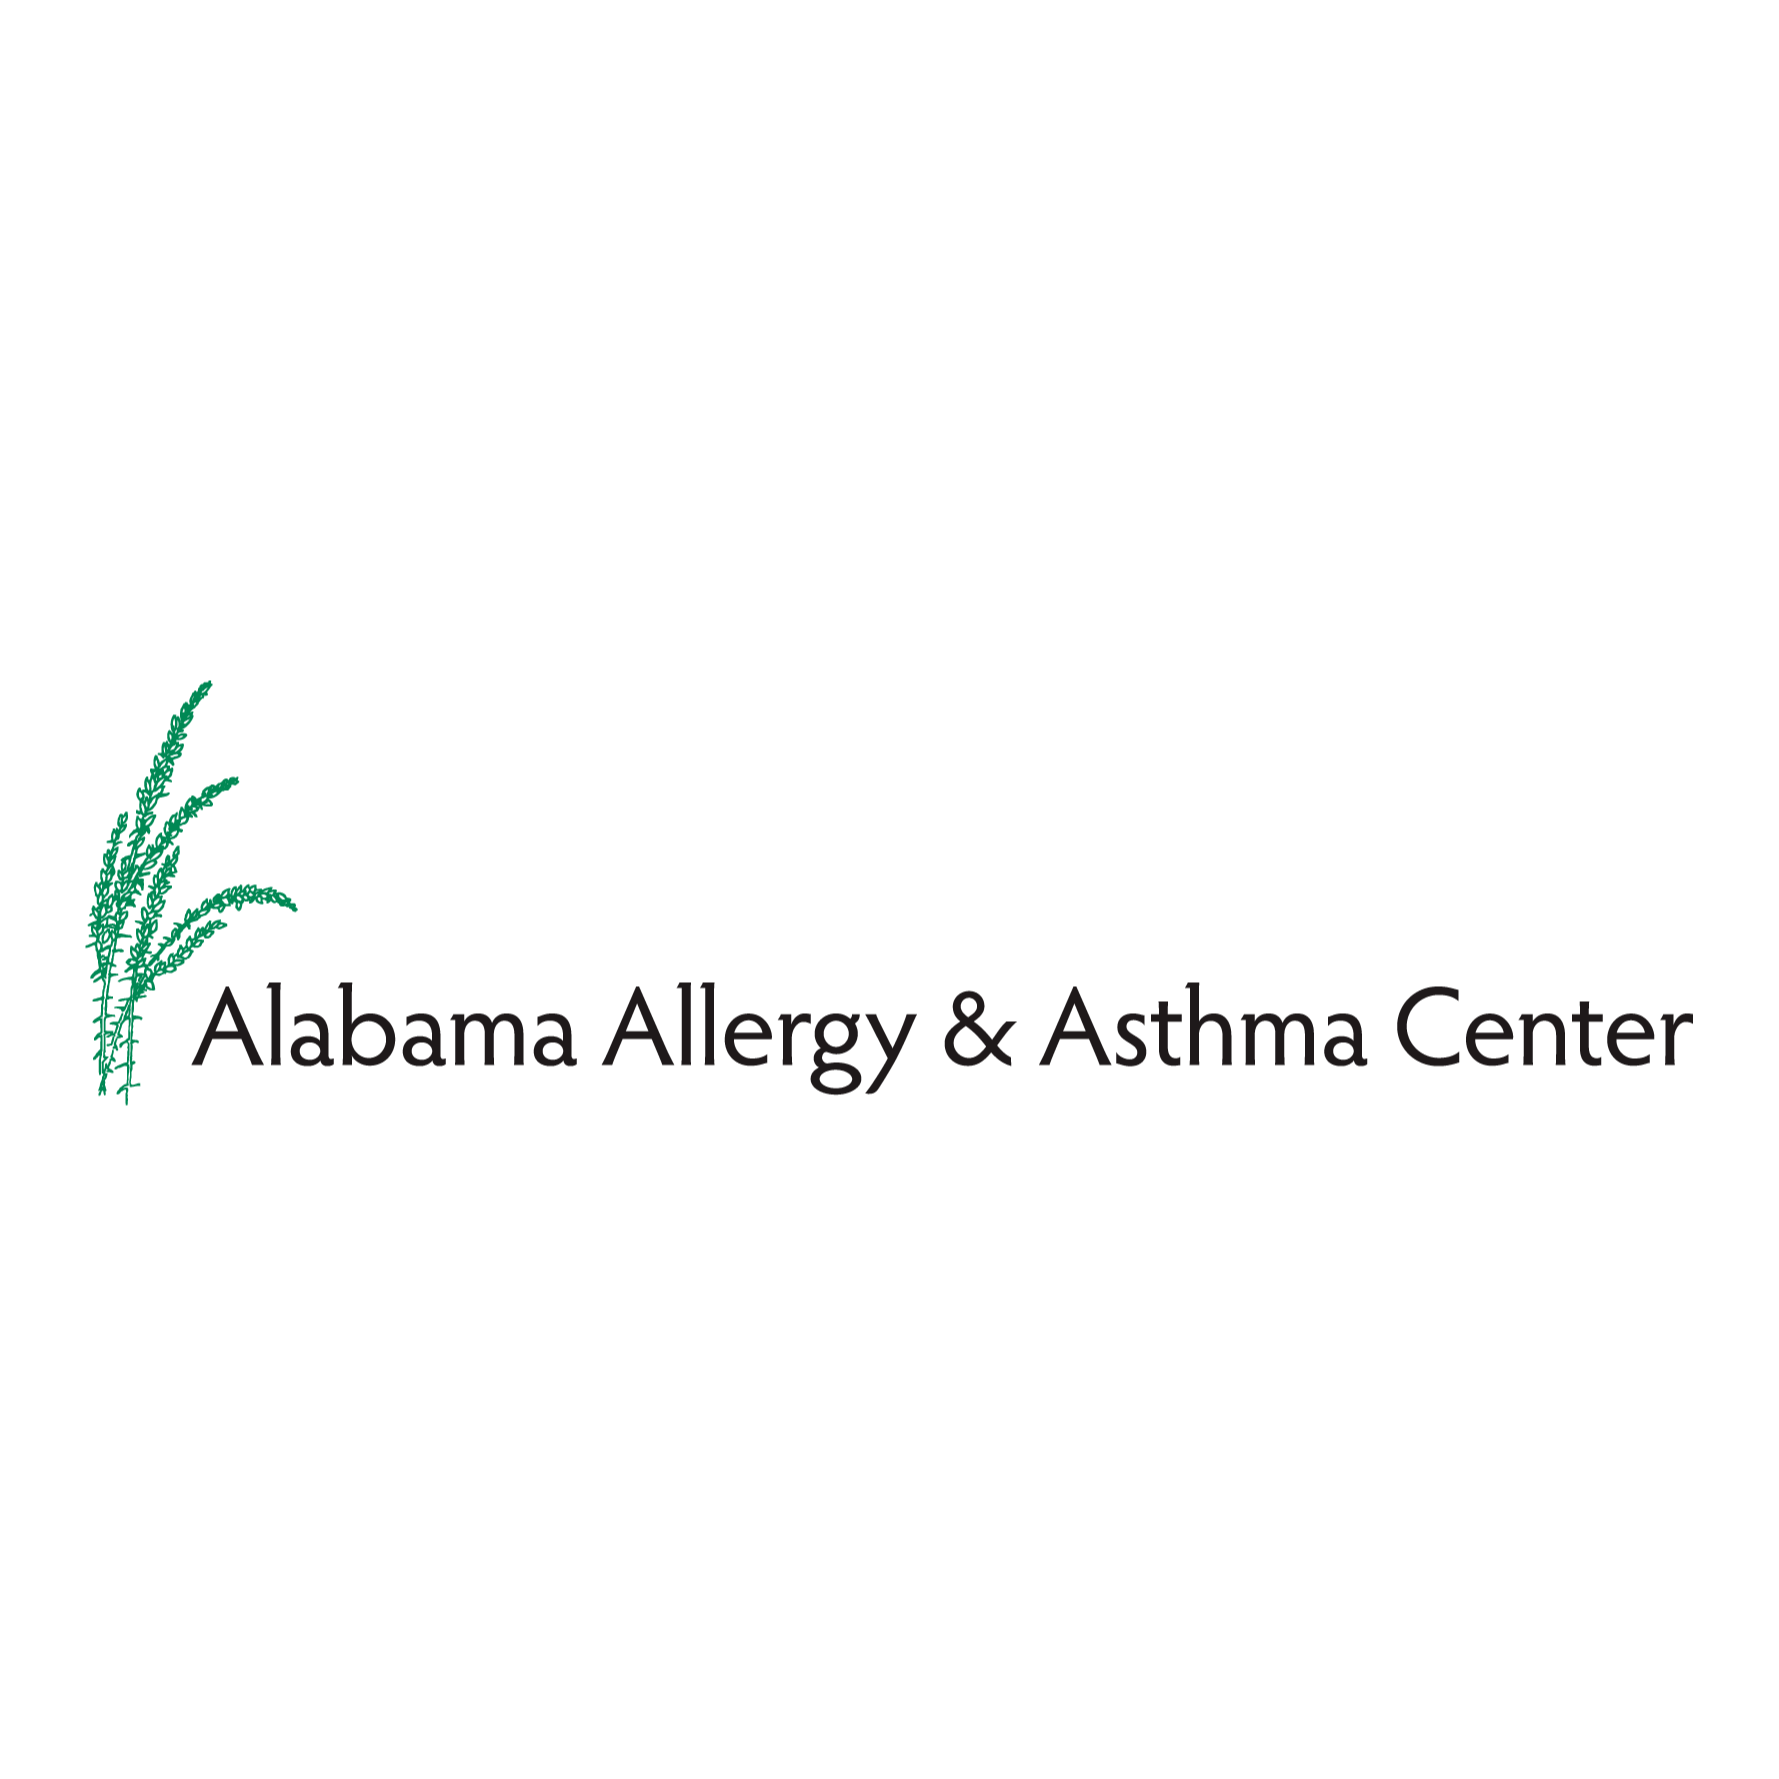 Alabama Allergy & Asthma Center